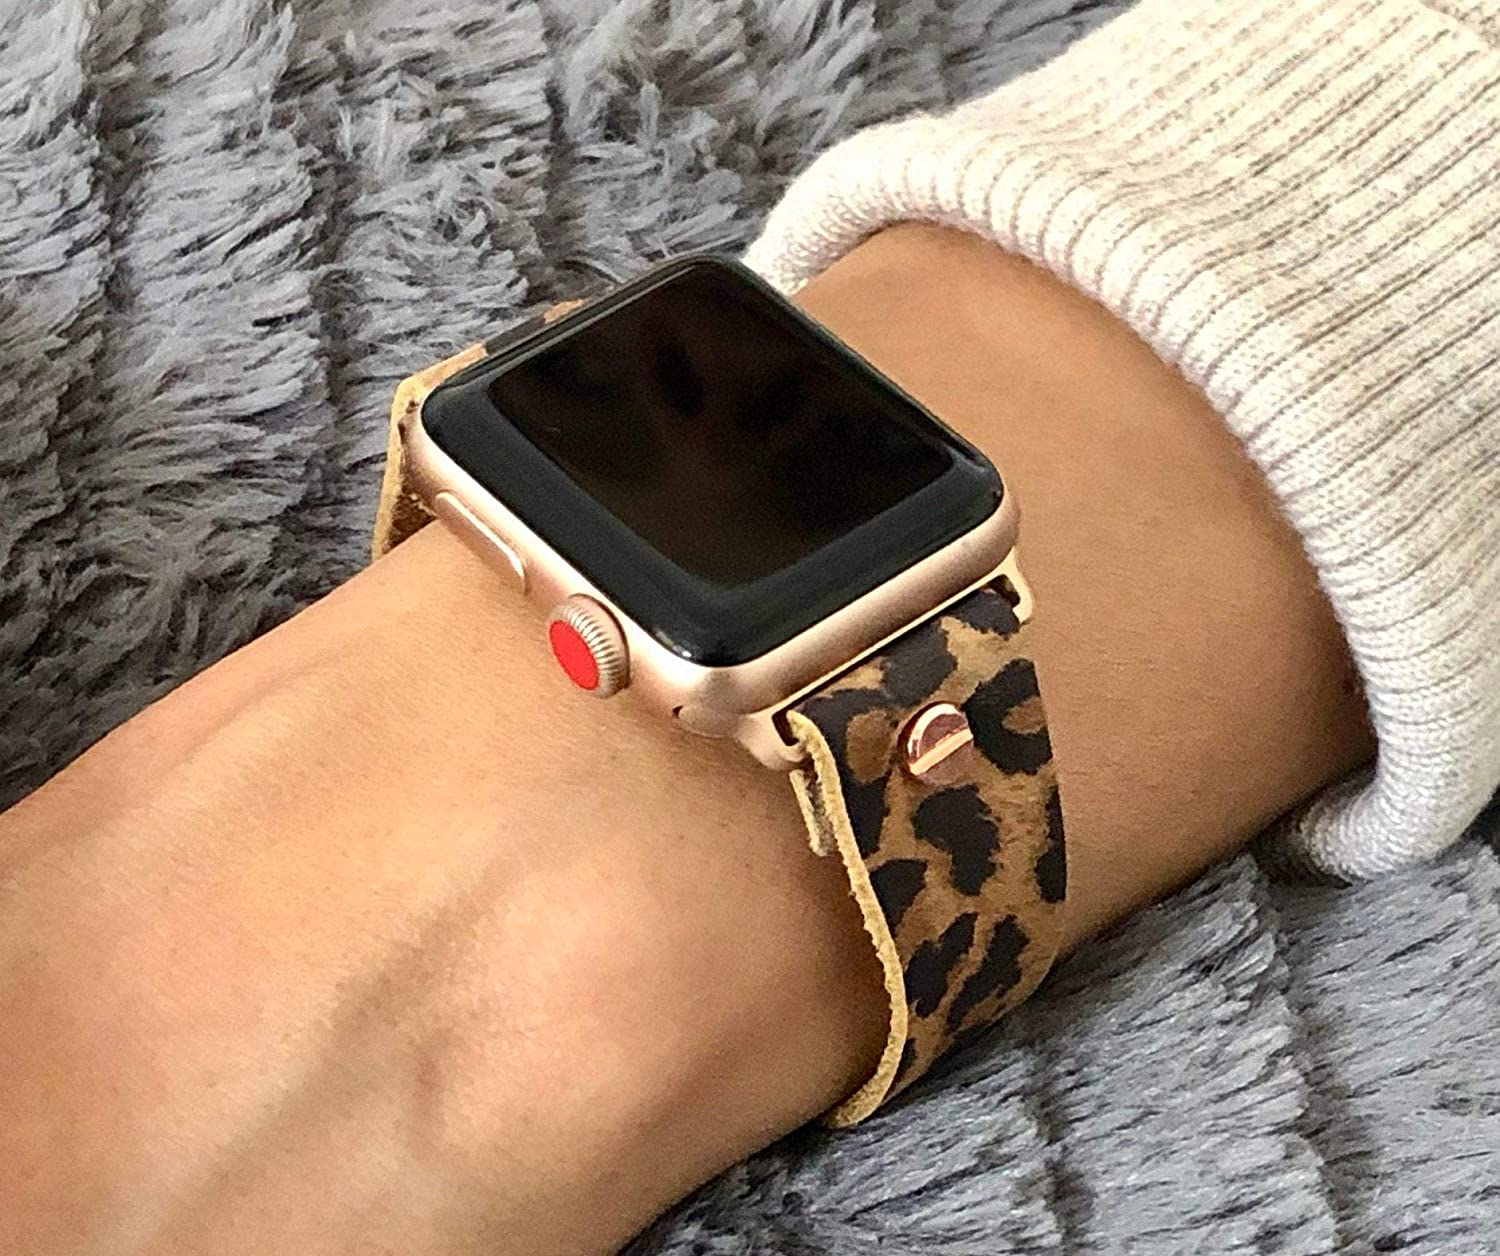 Amazon Com Leopard Leather 18mm Strap Bracelet For Apple Watch Series 6 5 4 3 2 1 Iwatch 38mm 40mm 42mm 44mm Band Rose Gold Jewelry Adjustable Size Watchband Handmade